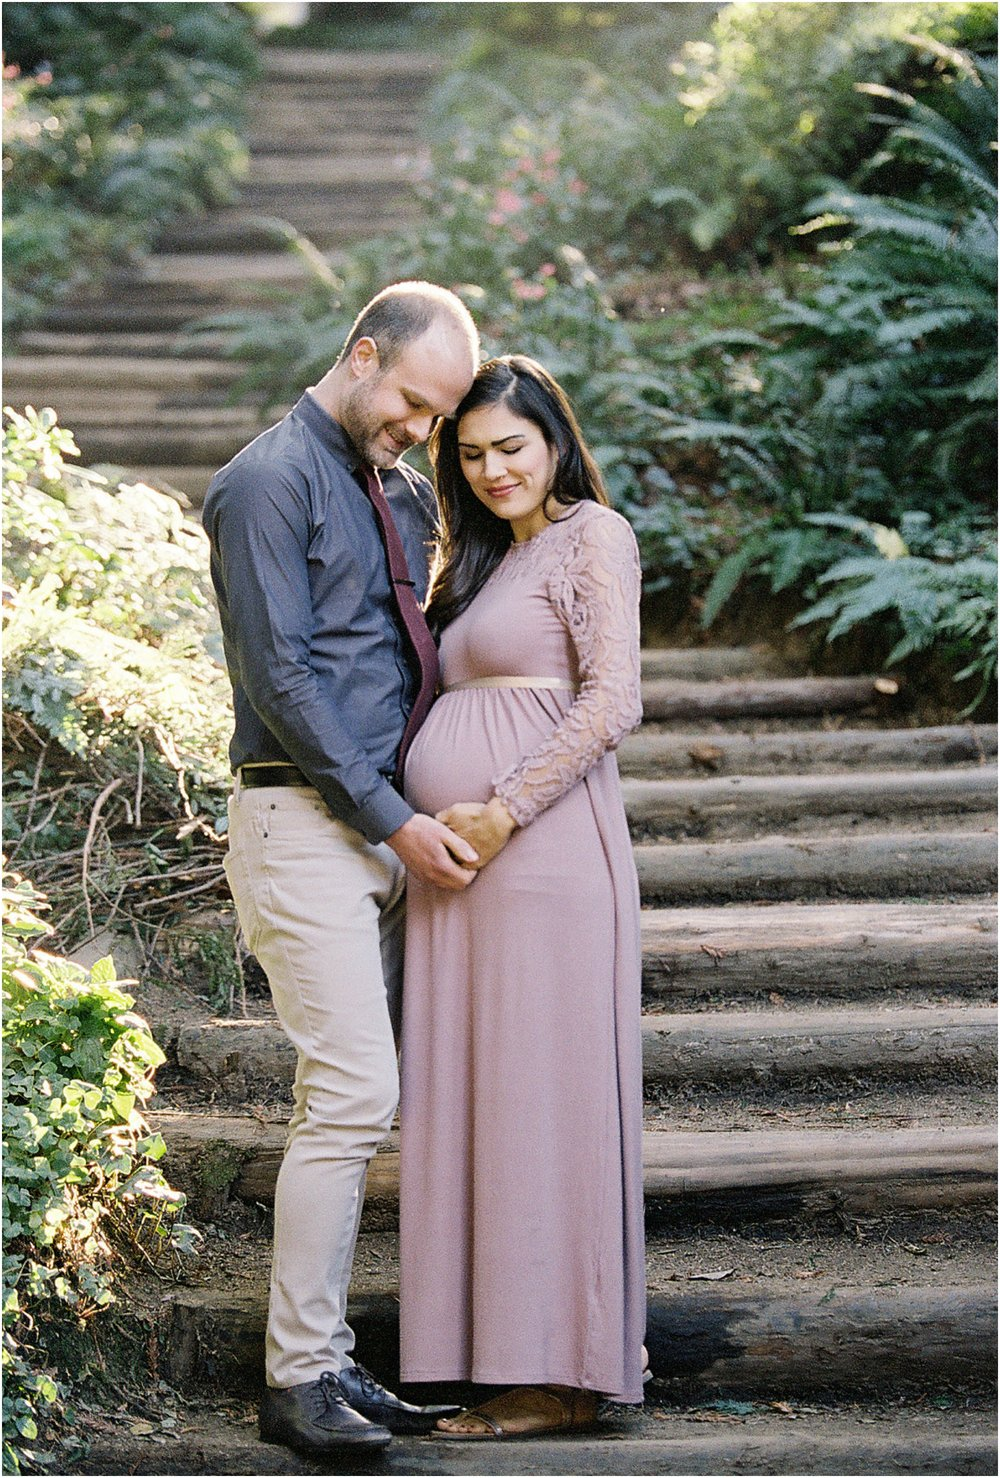 Maternity photos.  Briana Calderon Photography based in Tacoma, WA_0611.jpg